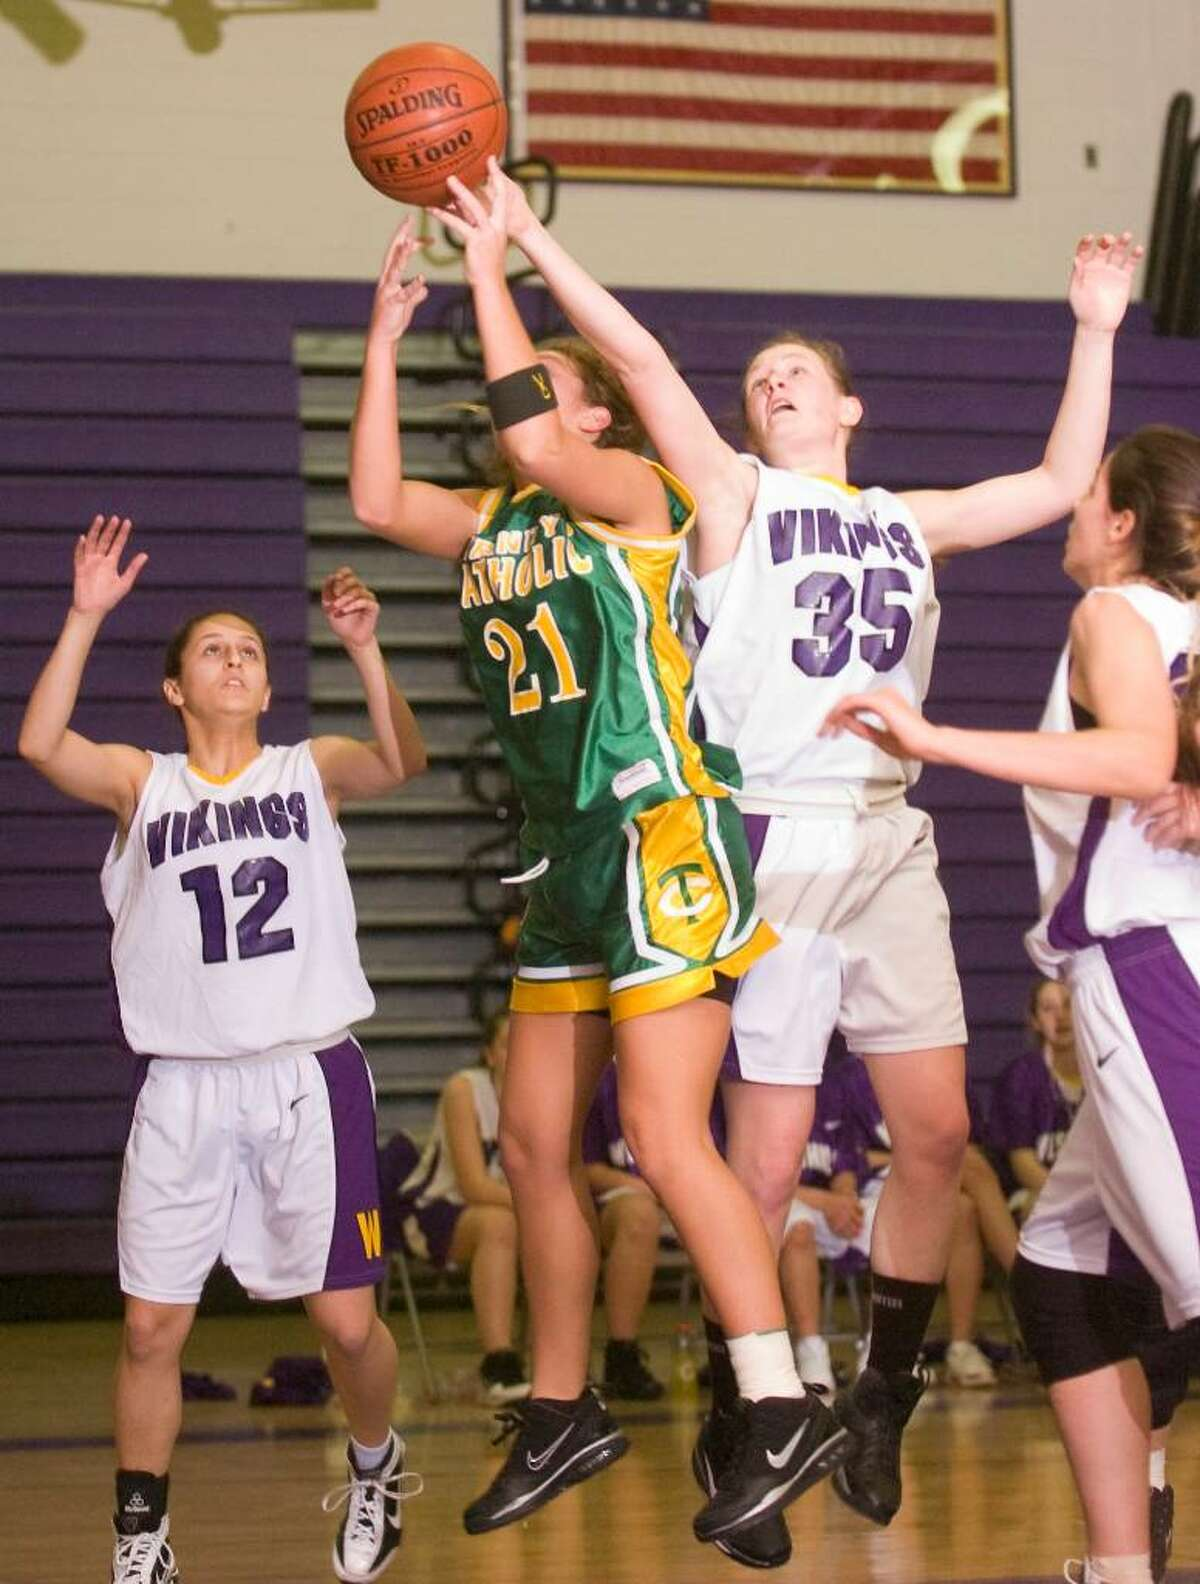 Westhill's Ann Hawthorn, right, tips a rebound away from Trinity Catholic's Clare O'Leary, center, during and FCIAC girls basketball game at Westhill High School in Stamford, Conn. on Tuesday, Jan. 12, 2010.